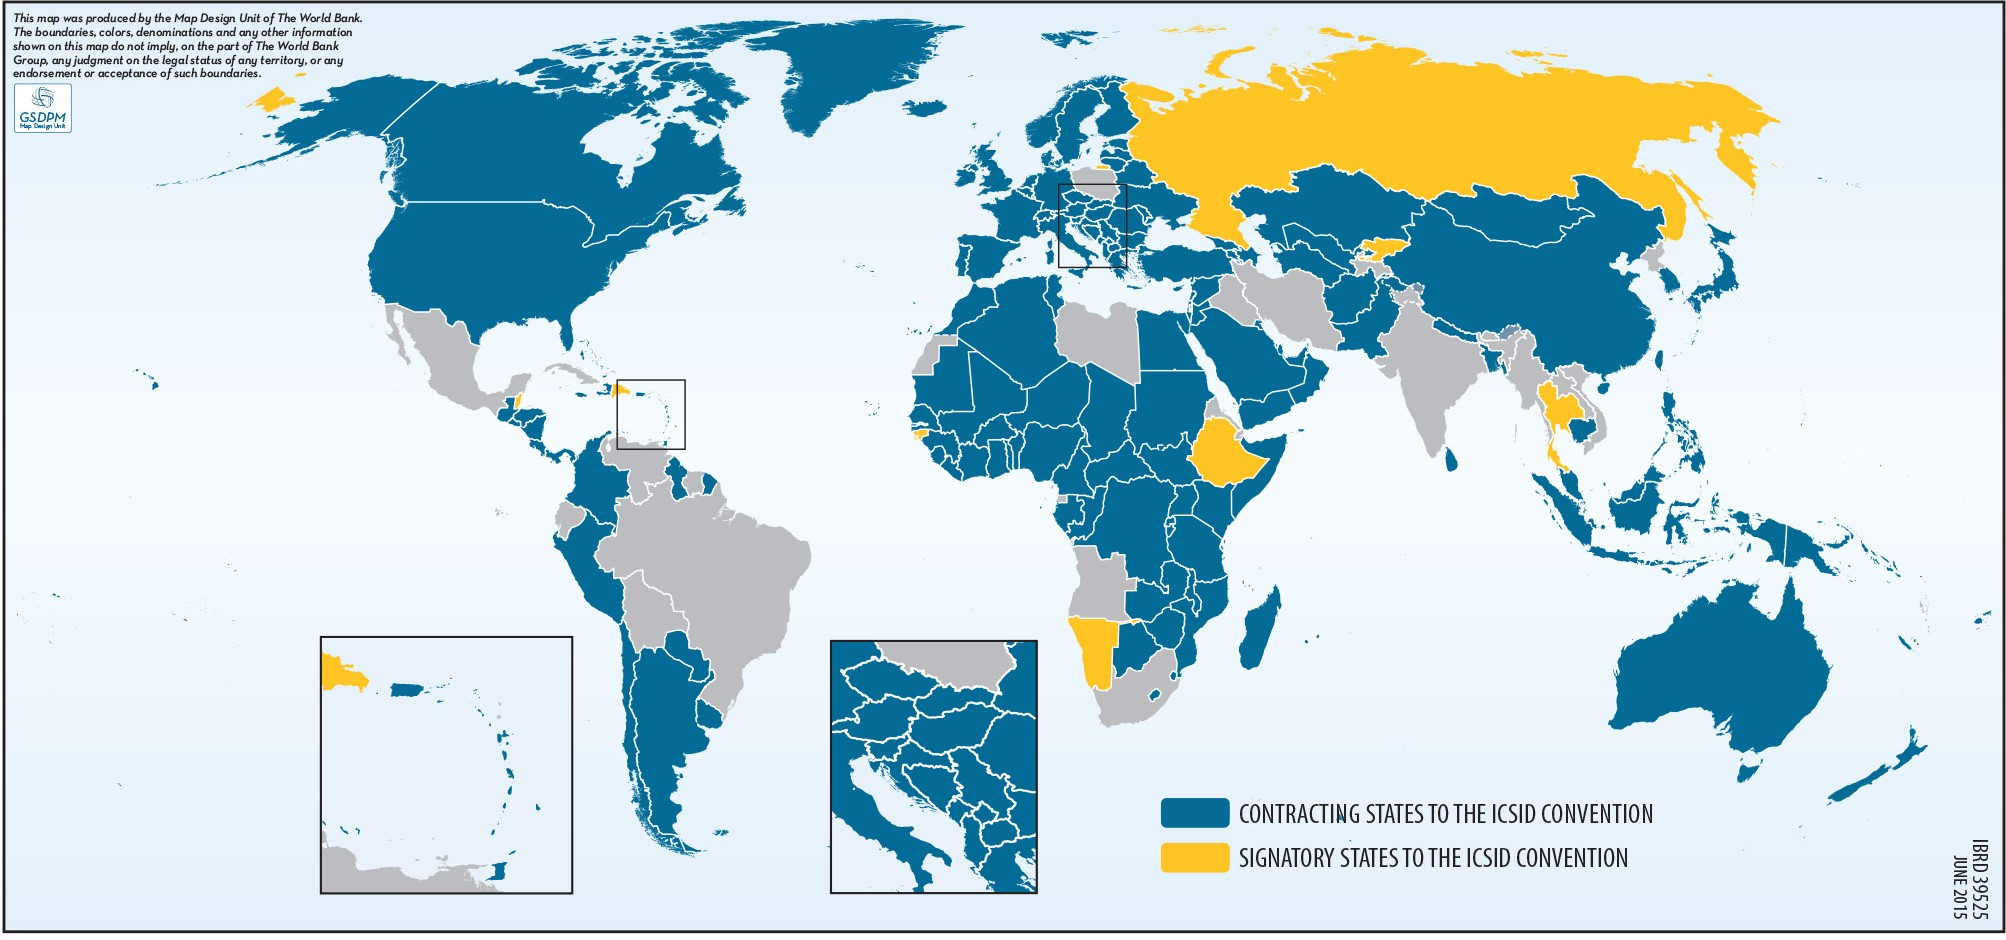 ICSID Contracting States Map